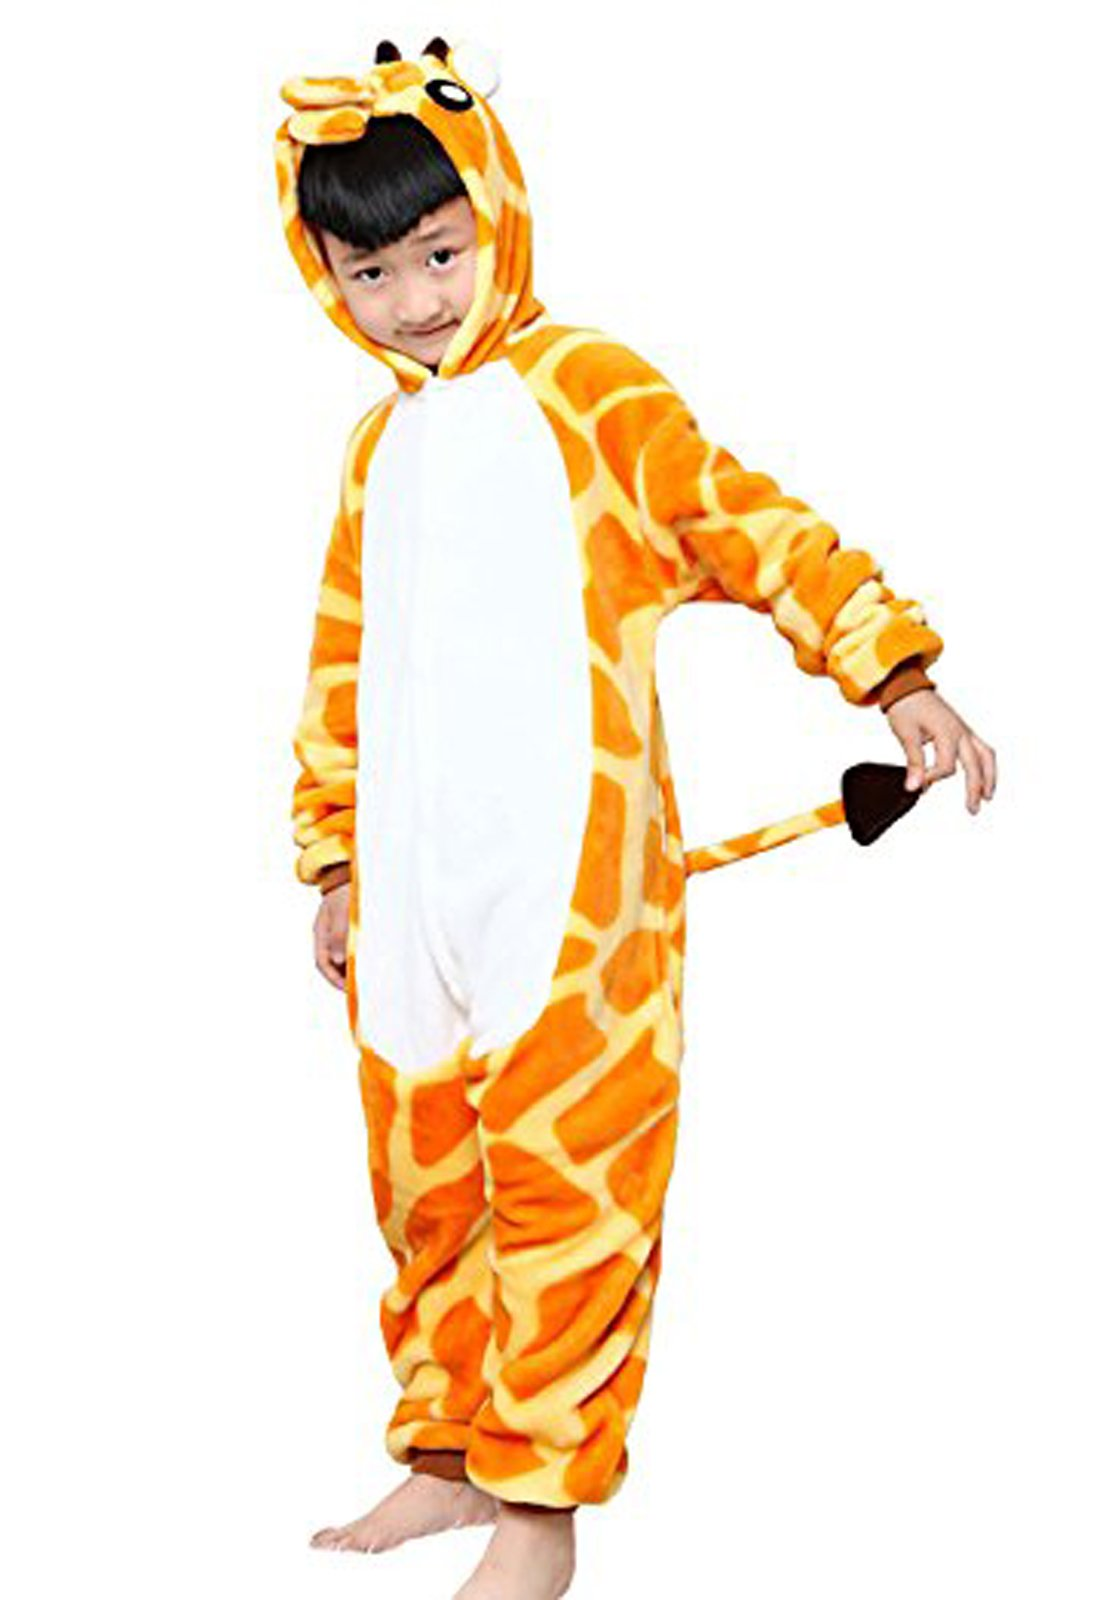 Eamaott Flannel Children Giraffe Cosplay Costume Christmas Onesie Pajamas Great Gift For Kids 125